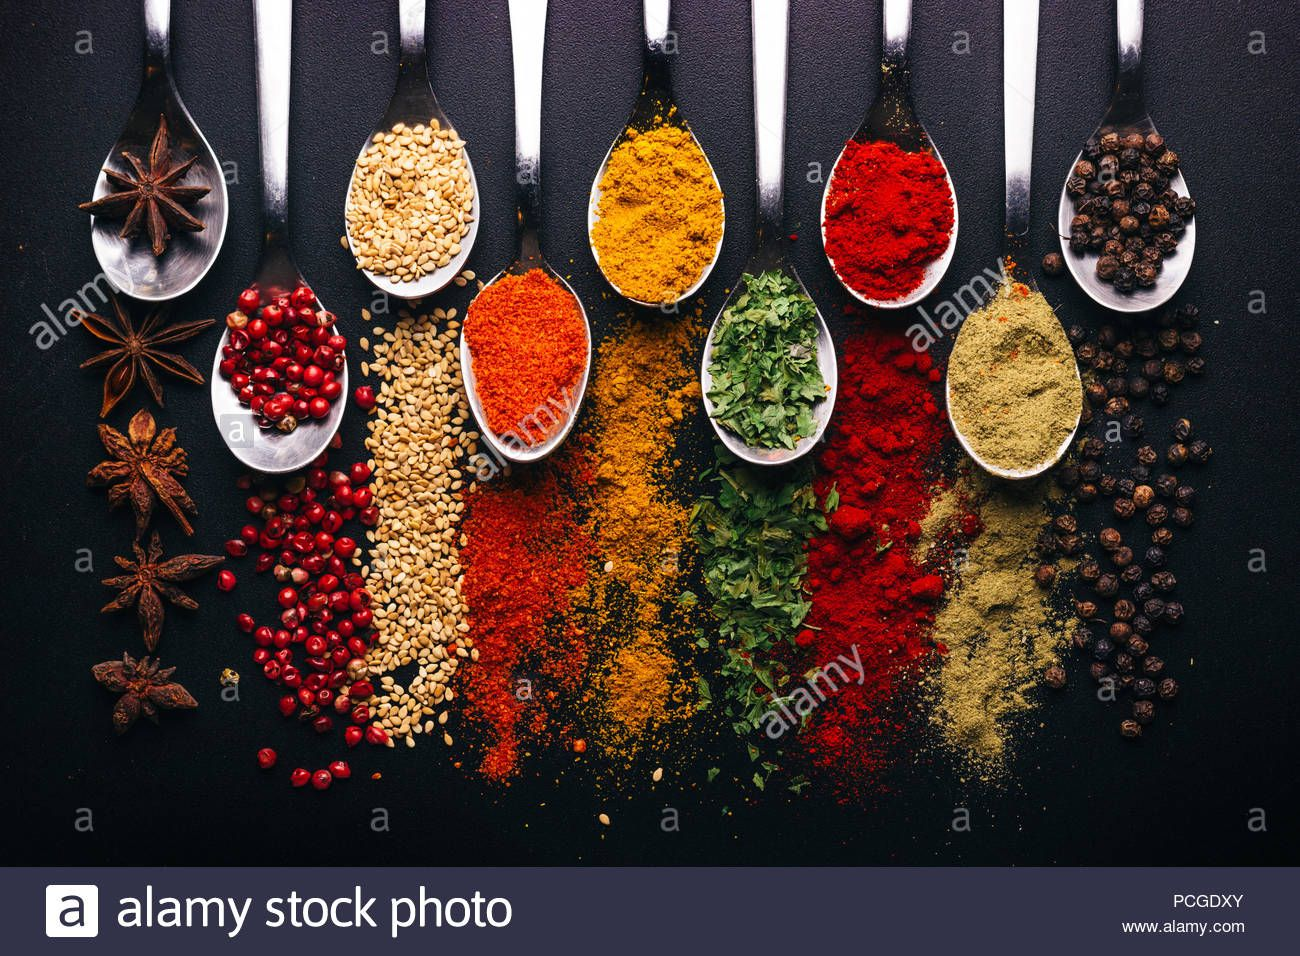 Download This Stock Image Spices And Condiments For Cooking On A